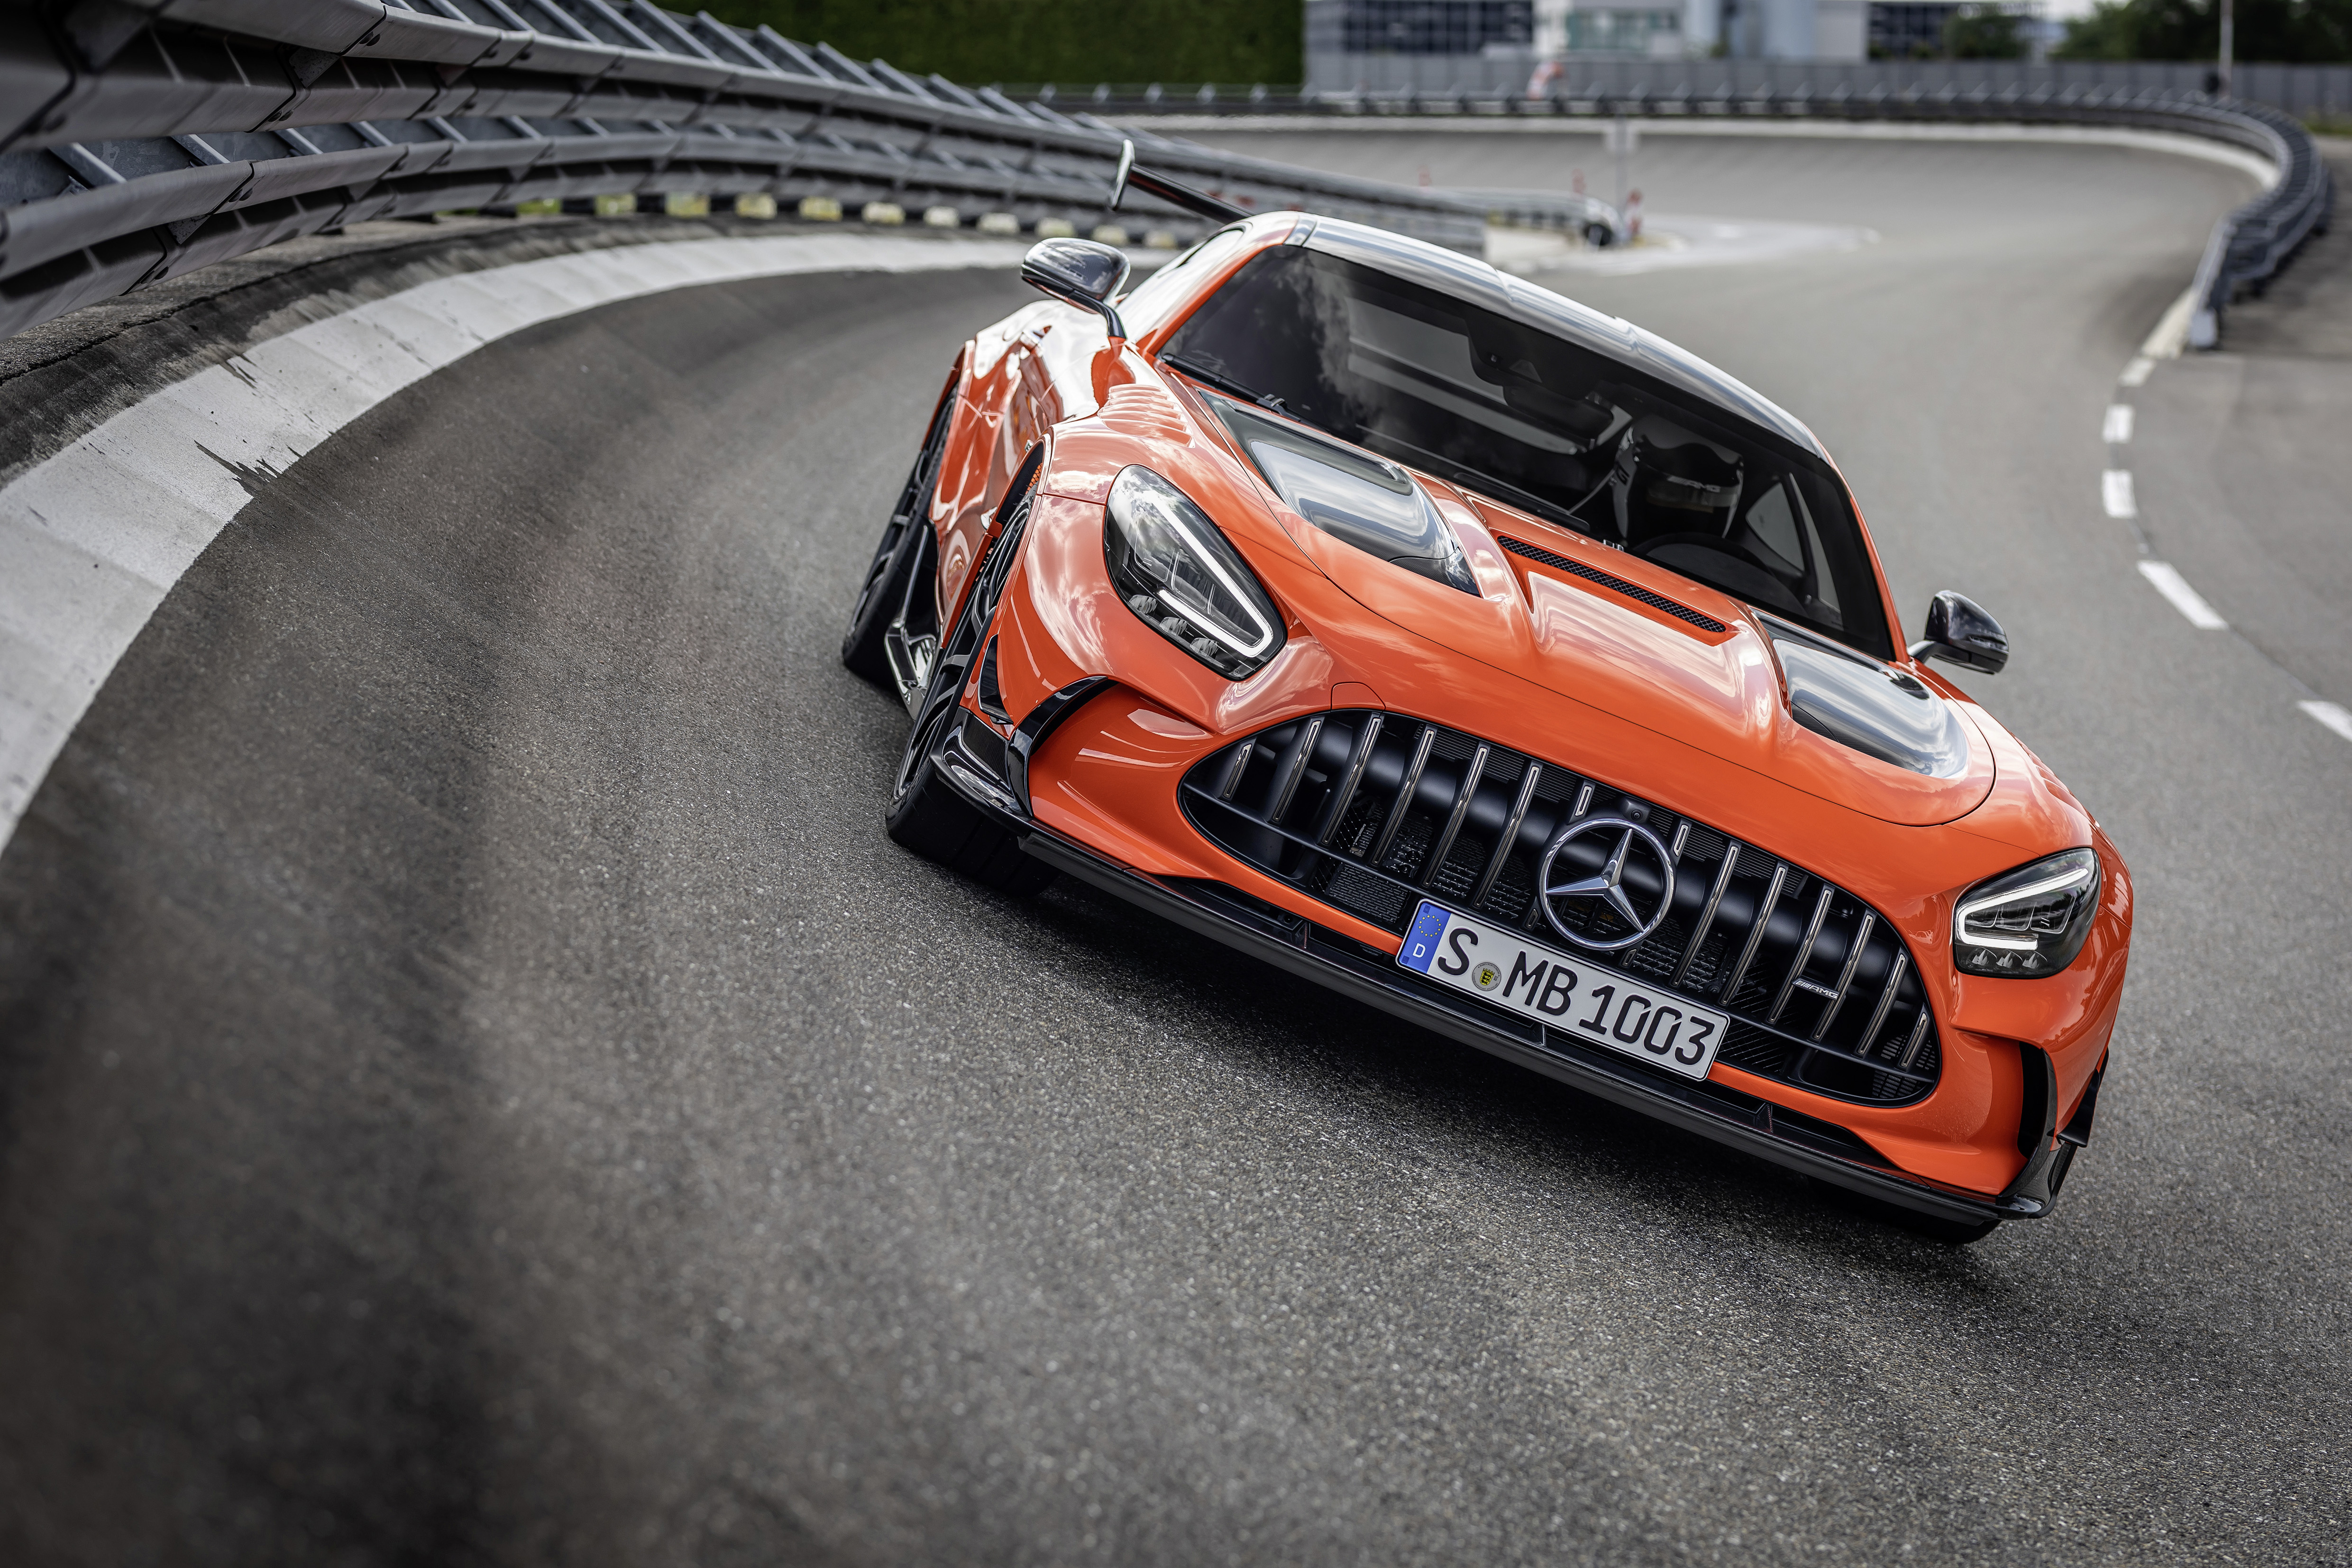 Ab sofort bestellbar: Der neue Mercedes-AMG GT Black Series  Available to order now: the new Mercedes-AMG GT Black Series